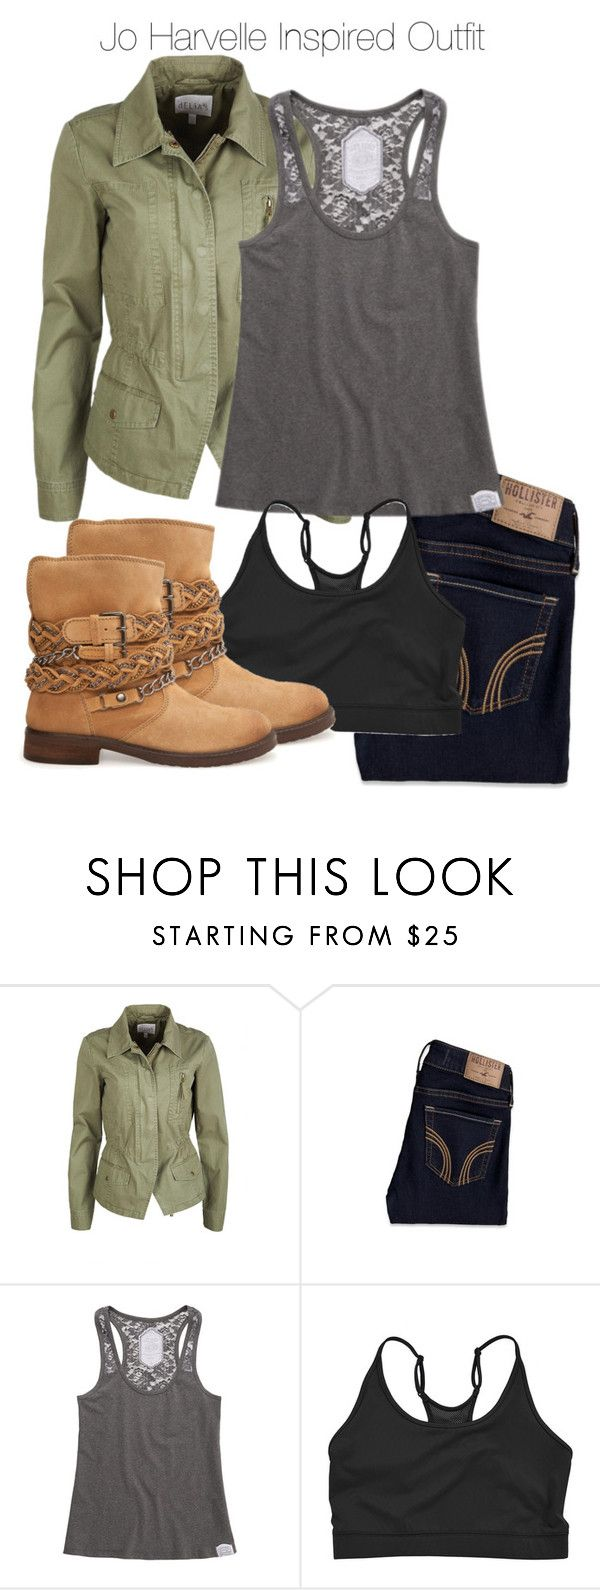 """""""Supernatural - Jo Harvelle Inspired Outfit"""" by staystronng ❤ liked on Polyvore featuring Hollister Co., Superdry, Rubber Doll, MANGO, Boots, jeans, spn and joharvelle"""